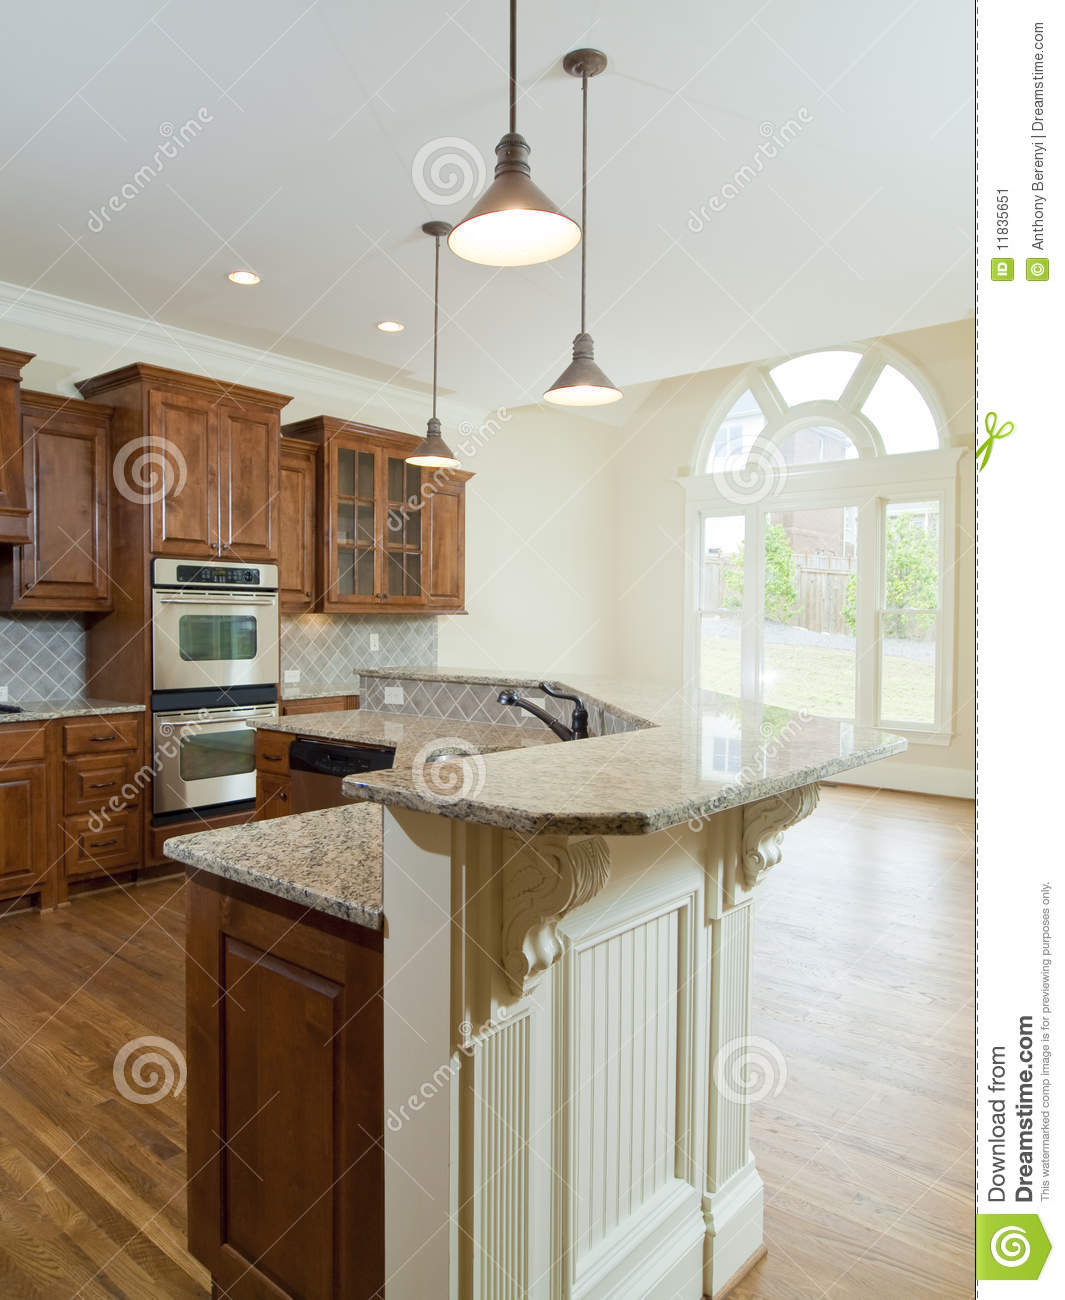 Model luxury home interior kitchen counter stock image image 11835651 for Maison moderne de luxe interieur